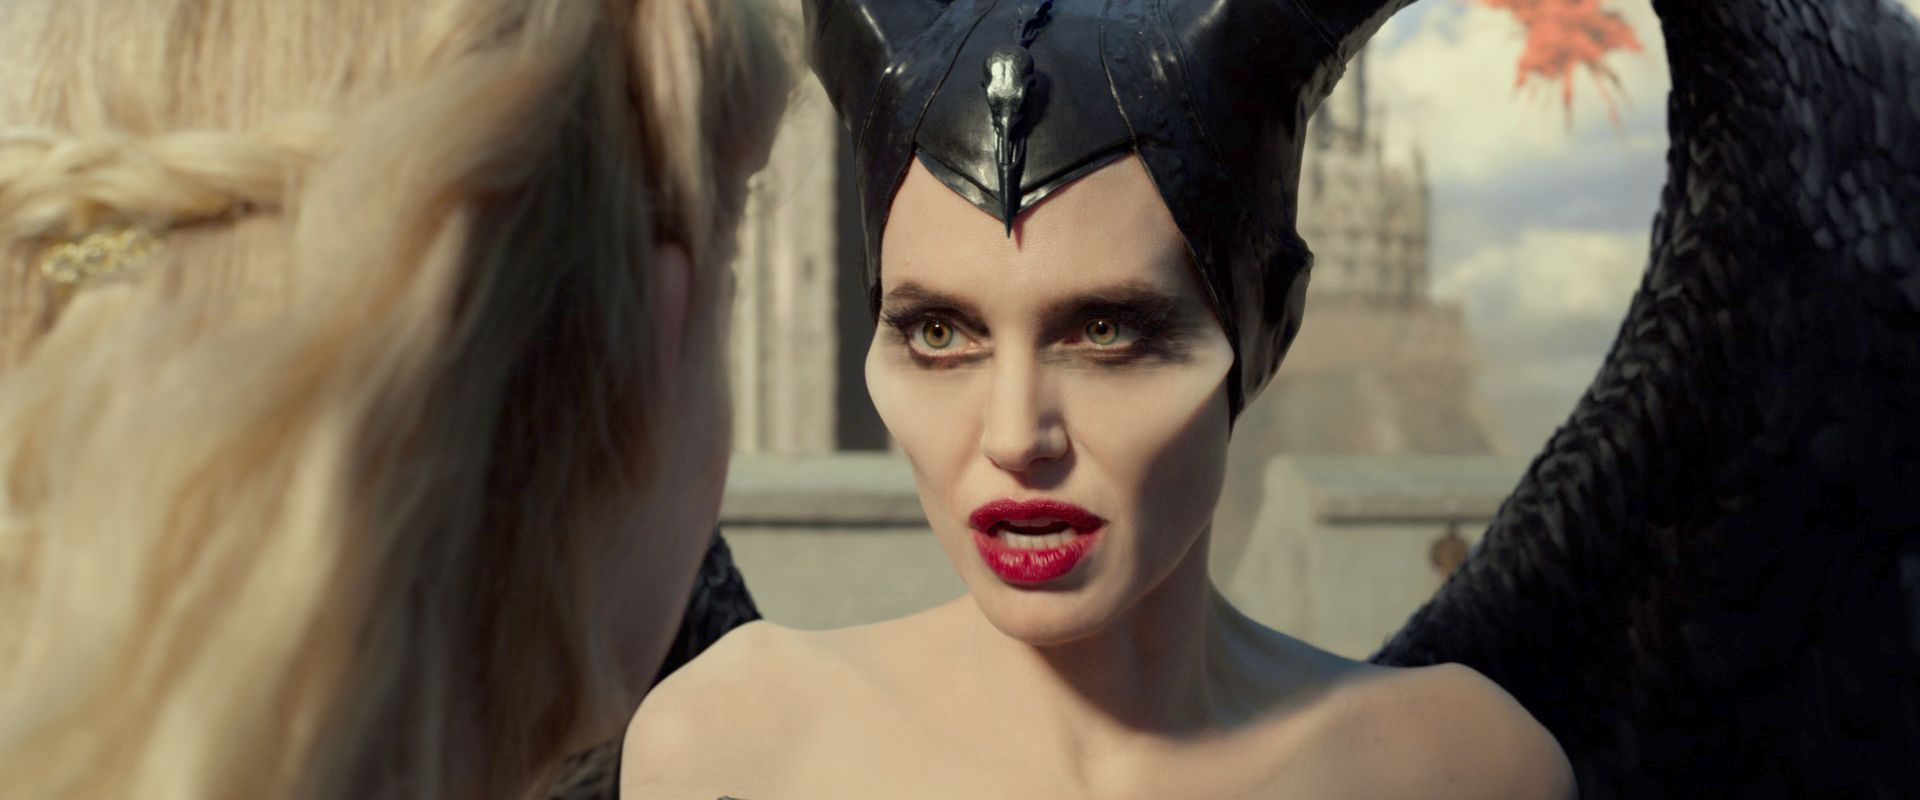 New Maleficent Mistress Of Evil Trailer Teases A Battle Of